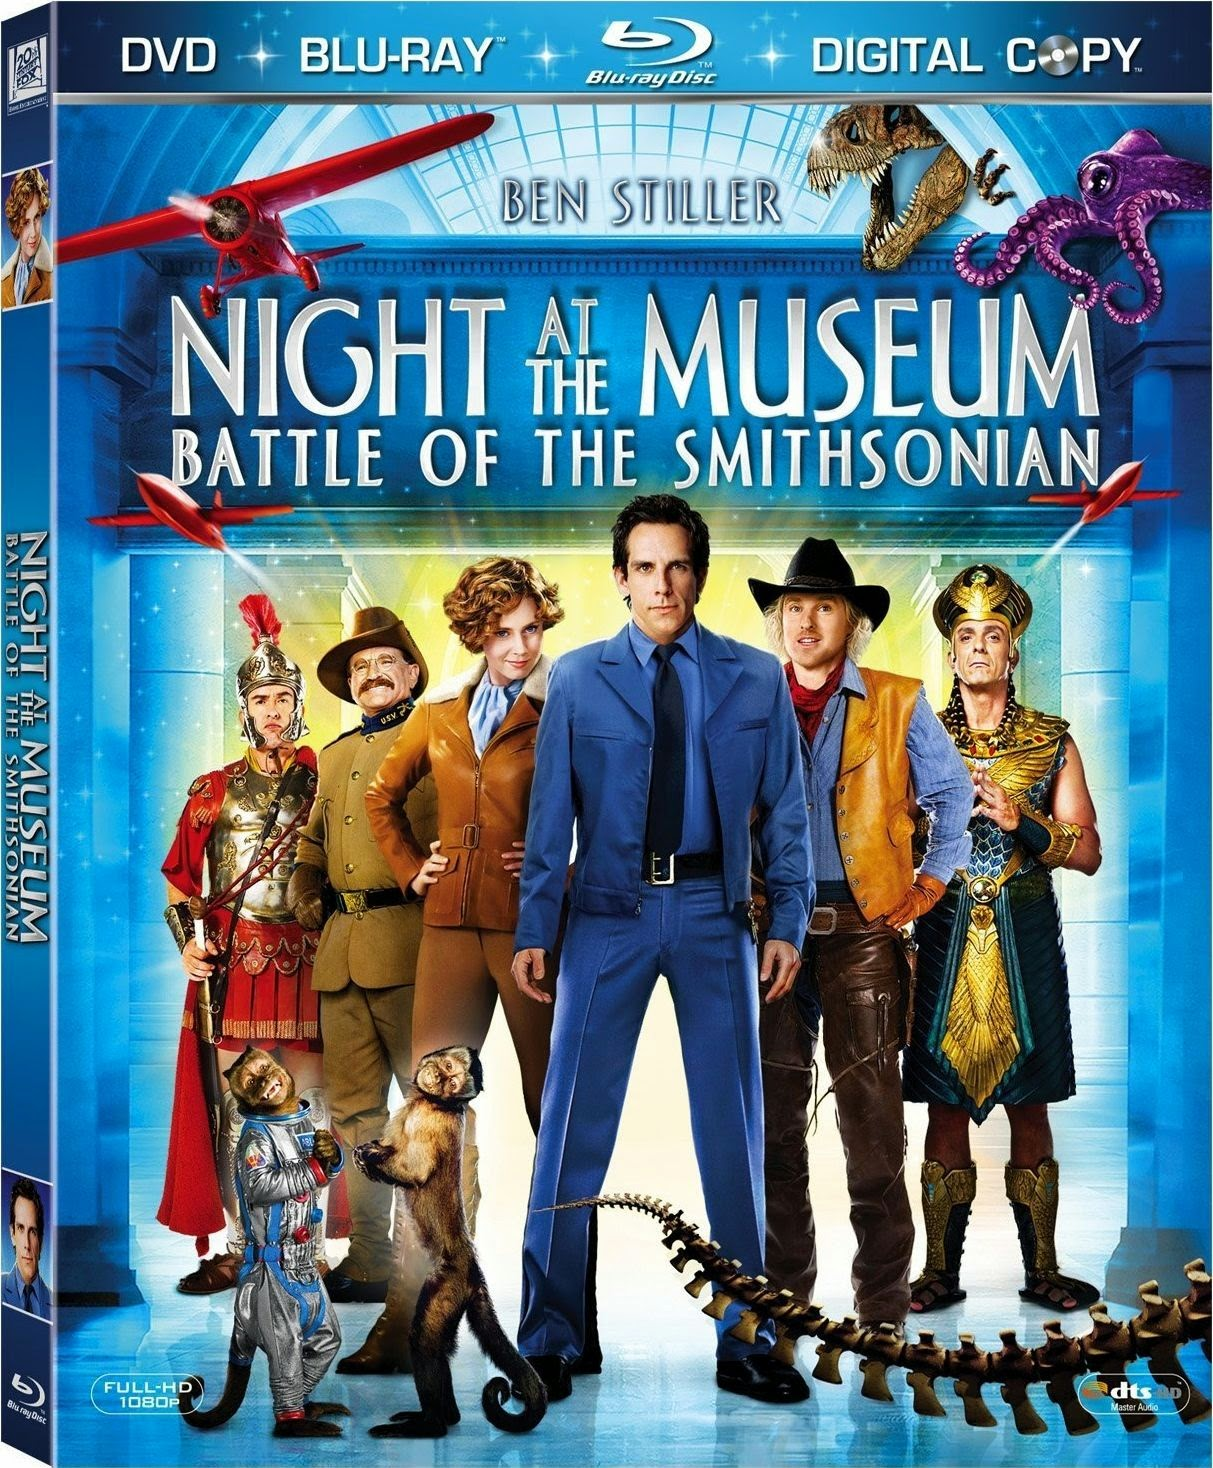 Night at the Museum: Battle of the Smithsonian - Μια Νύχτα στο Μουσείο (2009) ταινιες online seires oipeirates greek subs